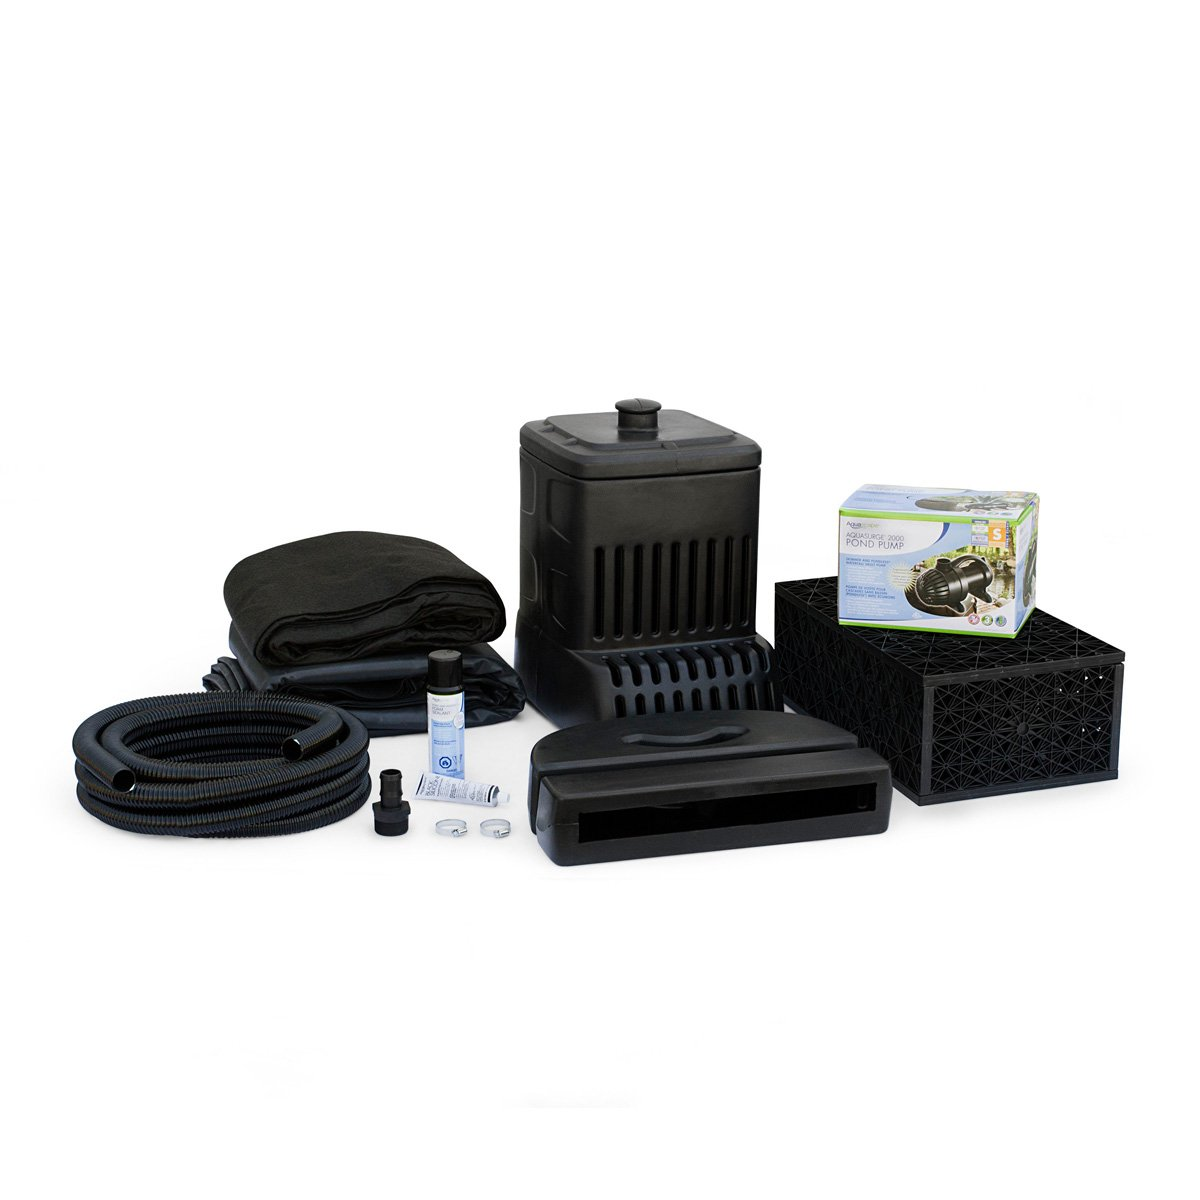 Aquascape DIY Backyard Waterfall Kit for Landscape and Garden | 83001